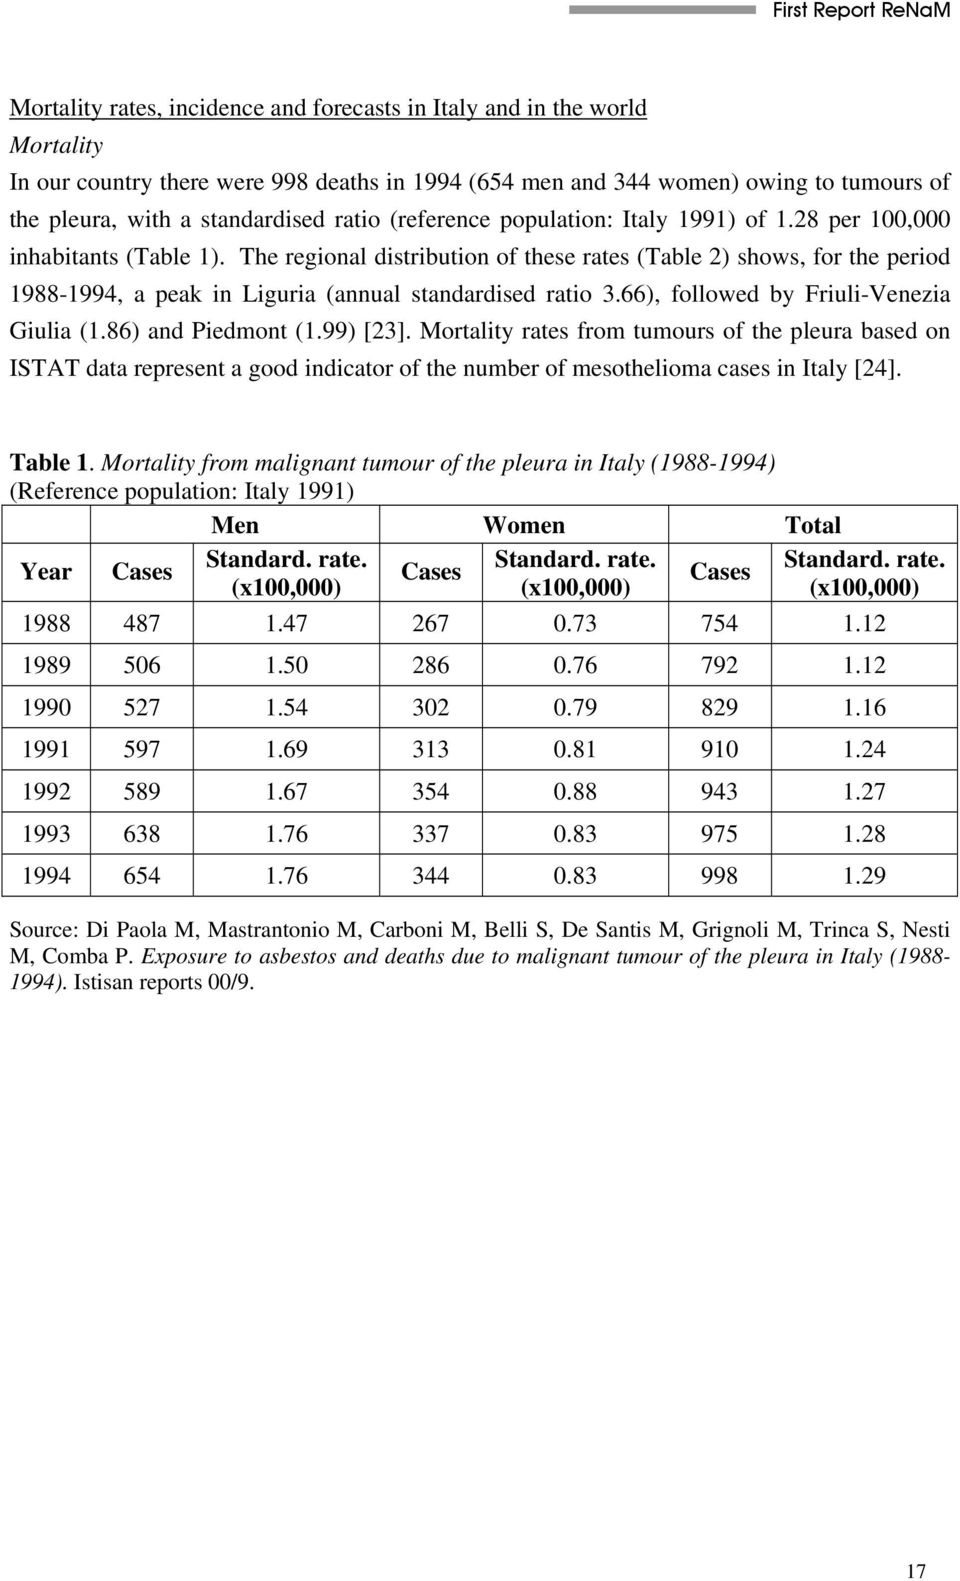 The regional distribution of these rates (Table 2) shows, for the period 1988-1994, a peak in Liguria (annual standardised ratio 3.66), followed by Friuli-Venezia Giulia (1.86) and Piedmont (1.